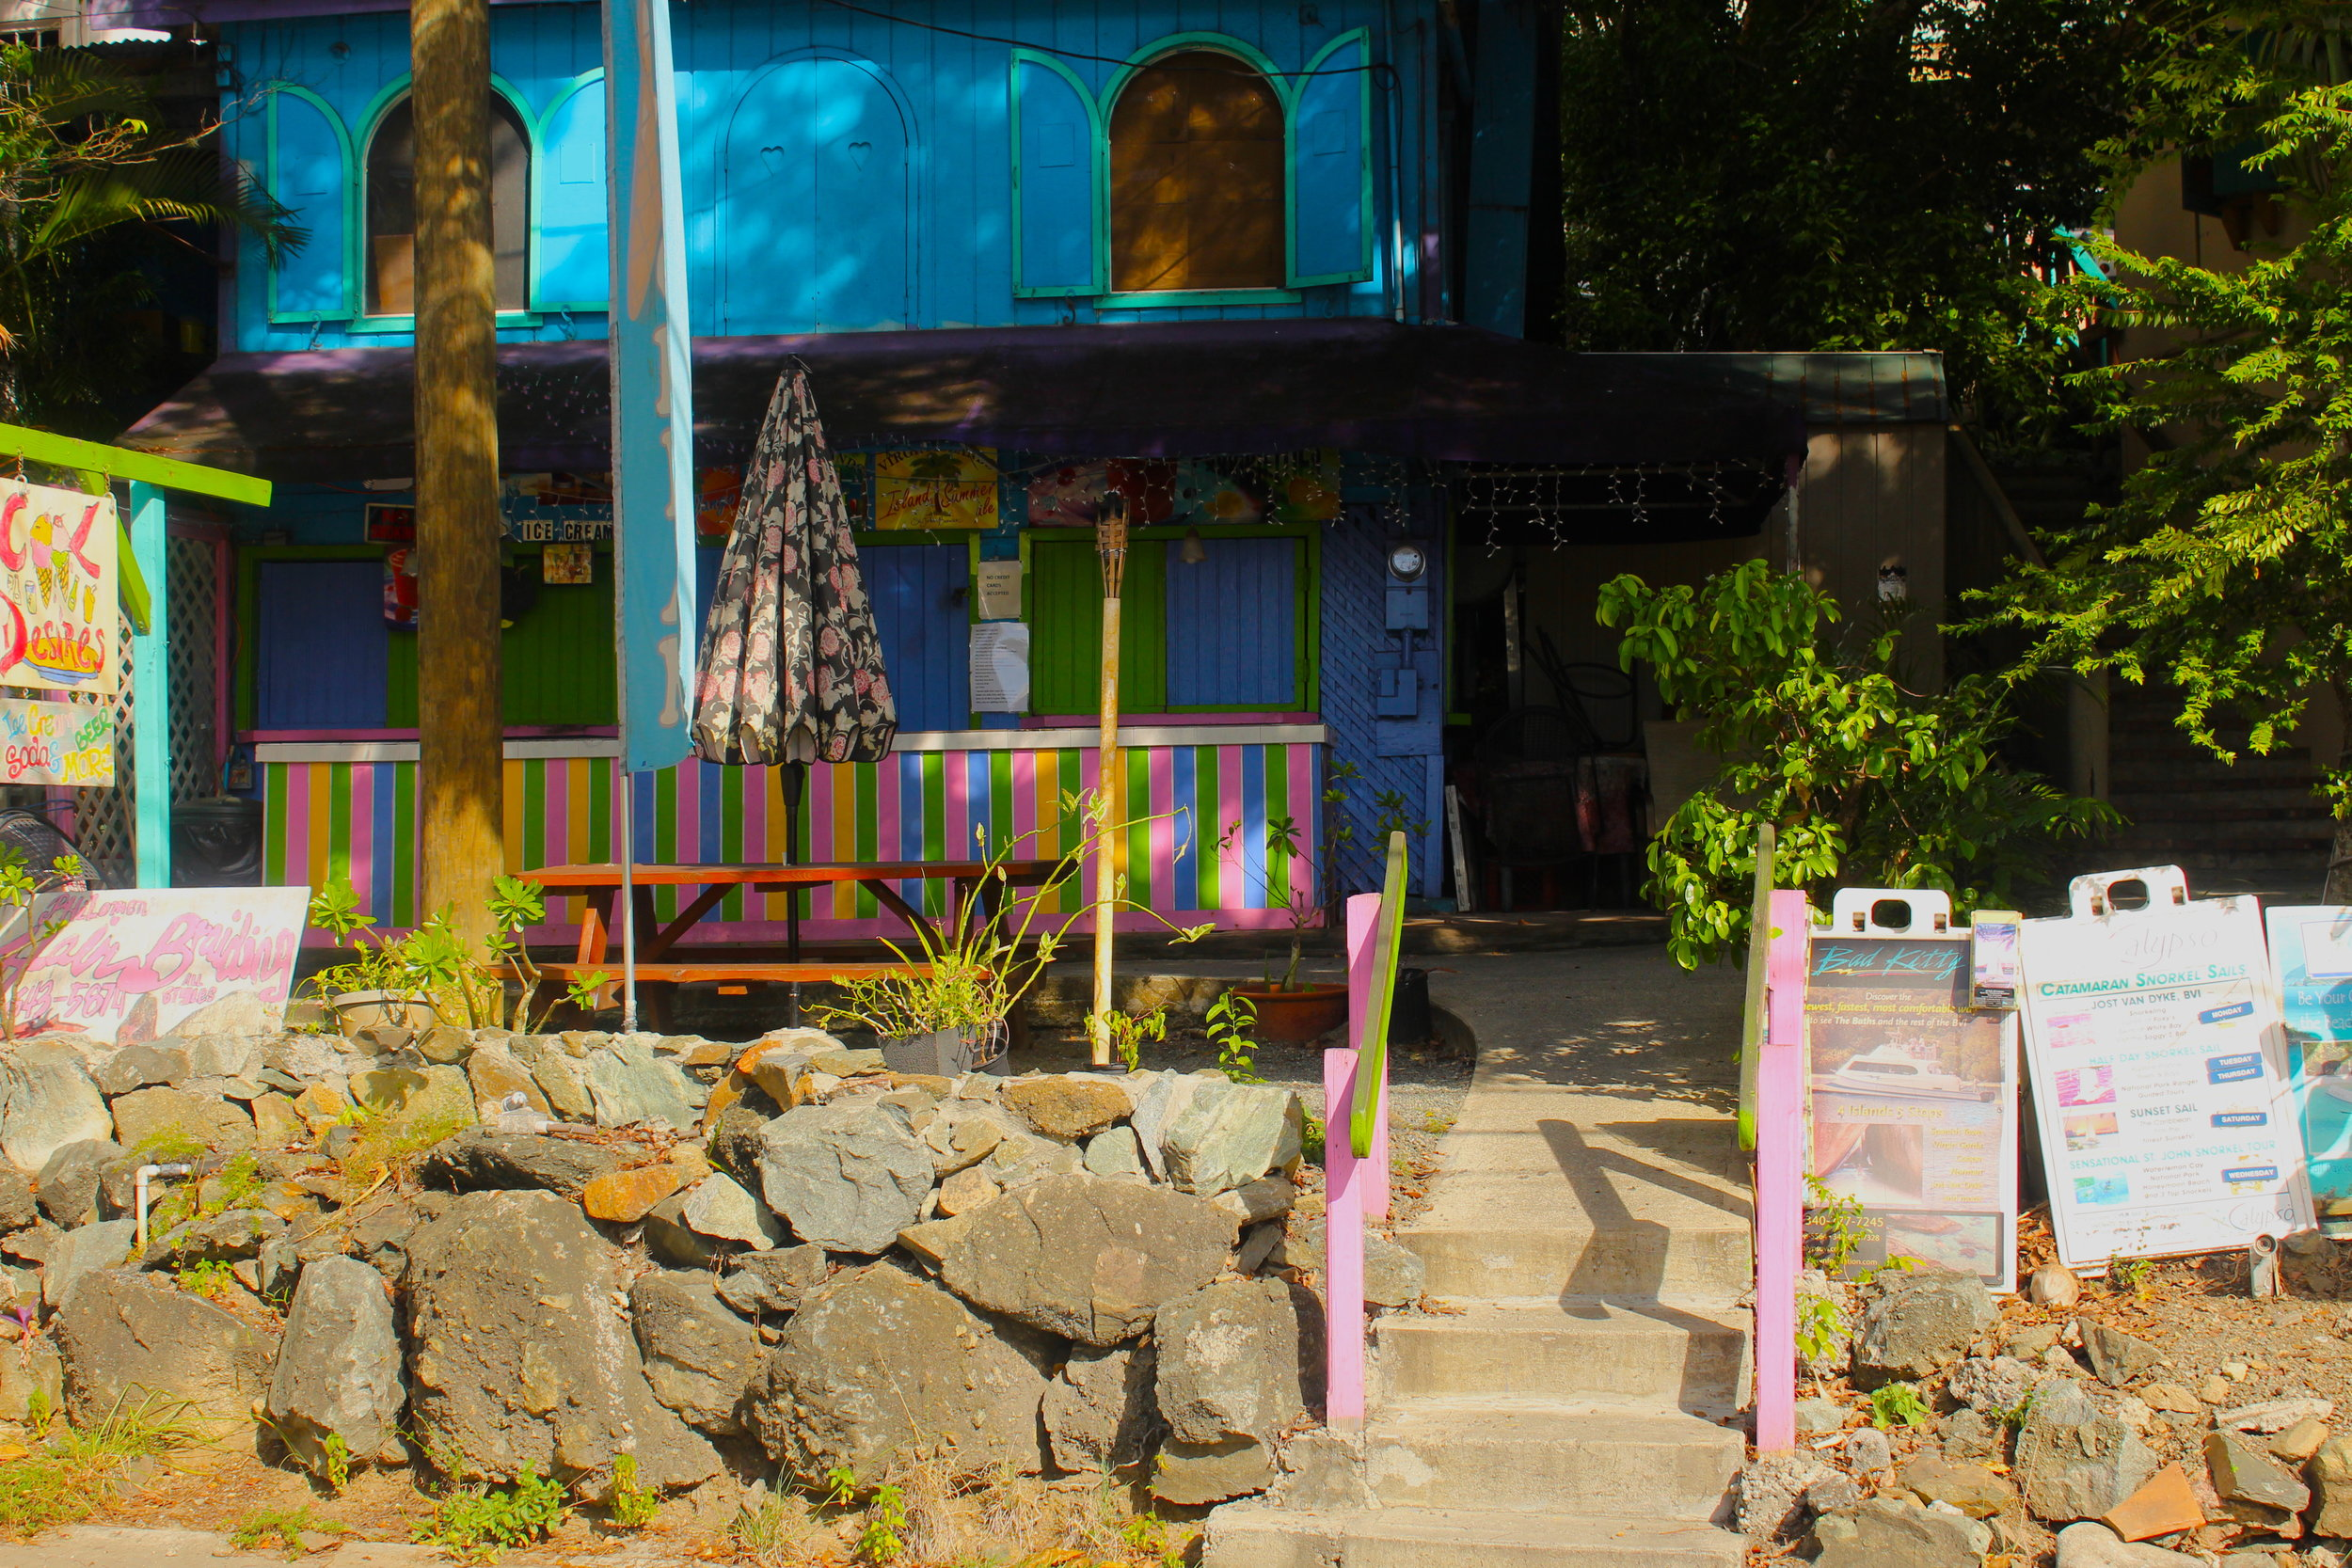 A colorful local business in Coral bay, St. John